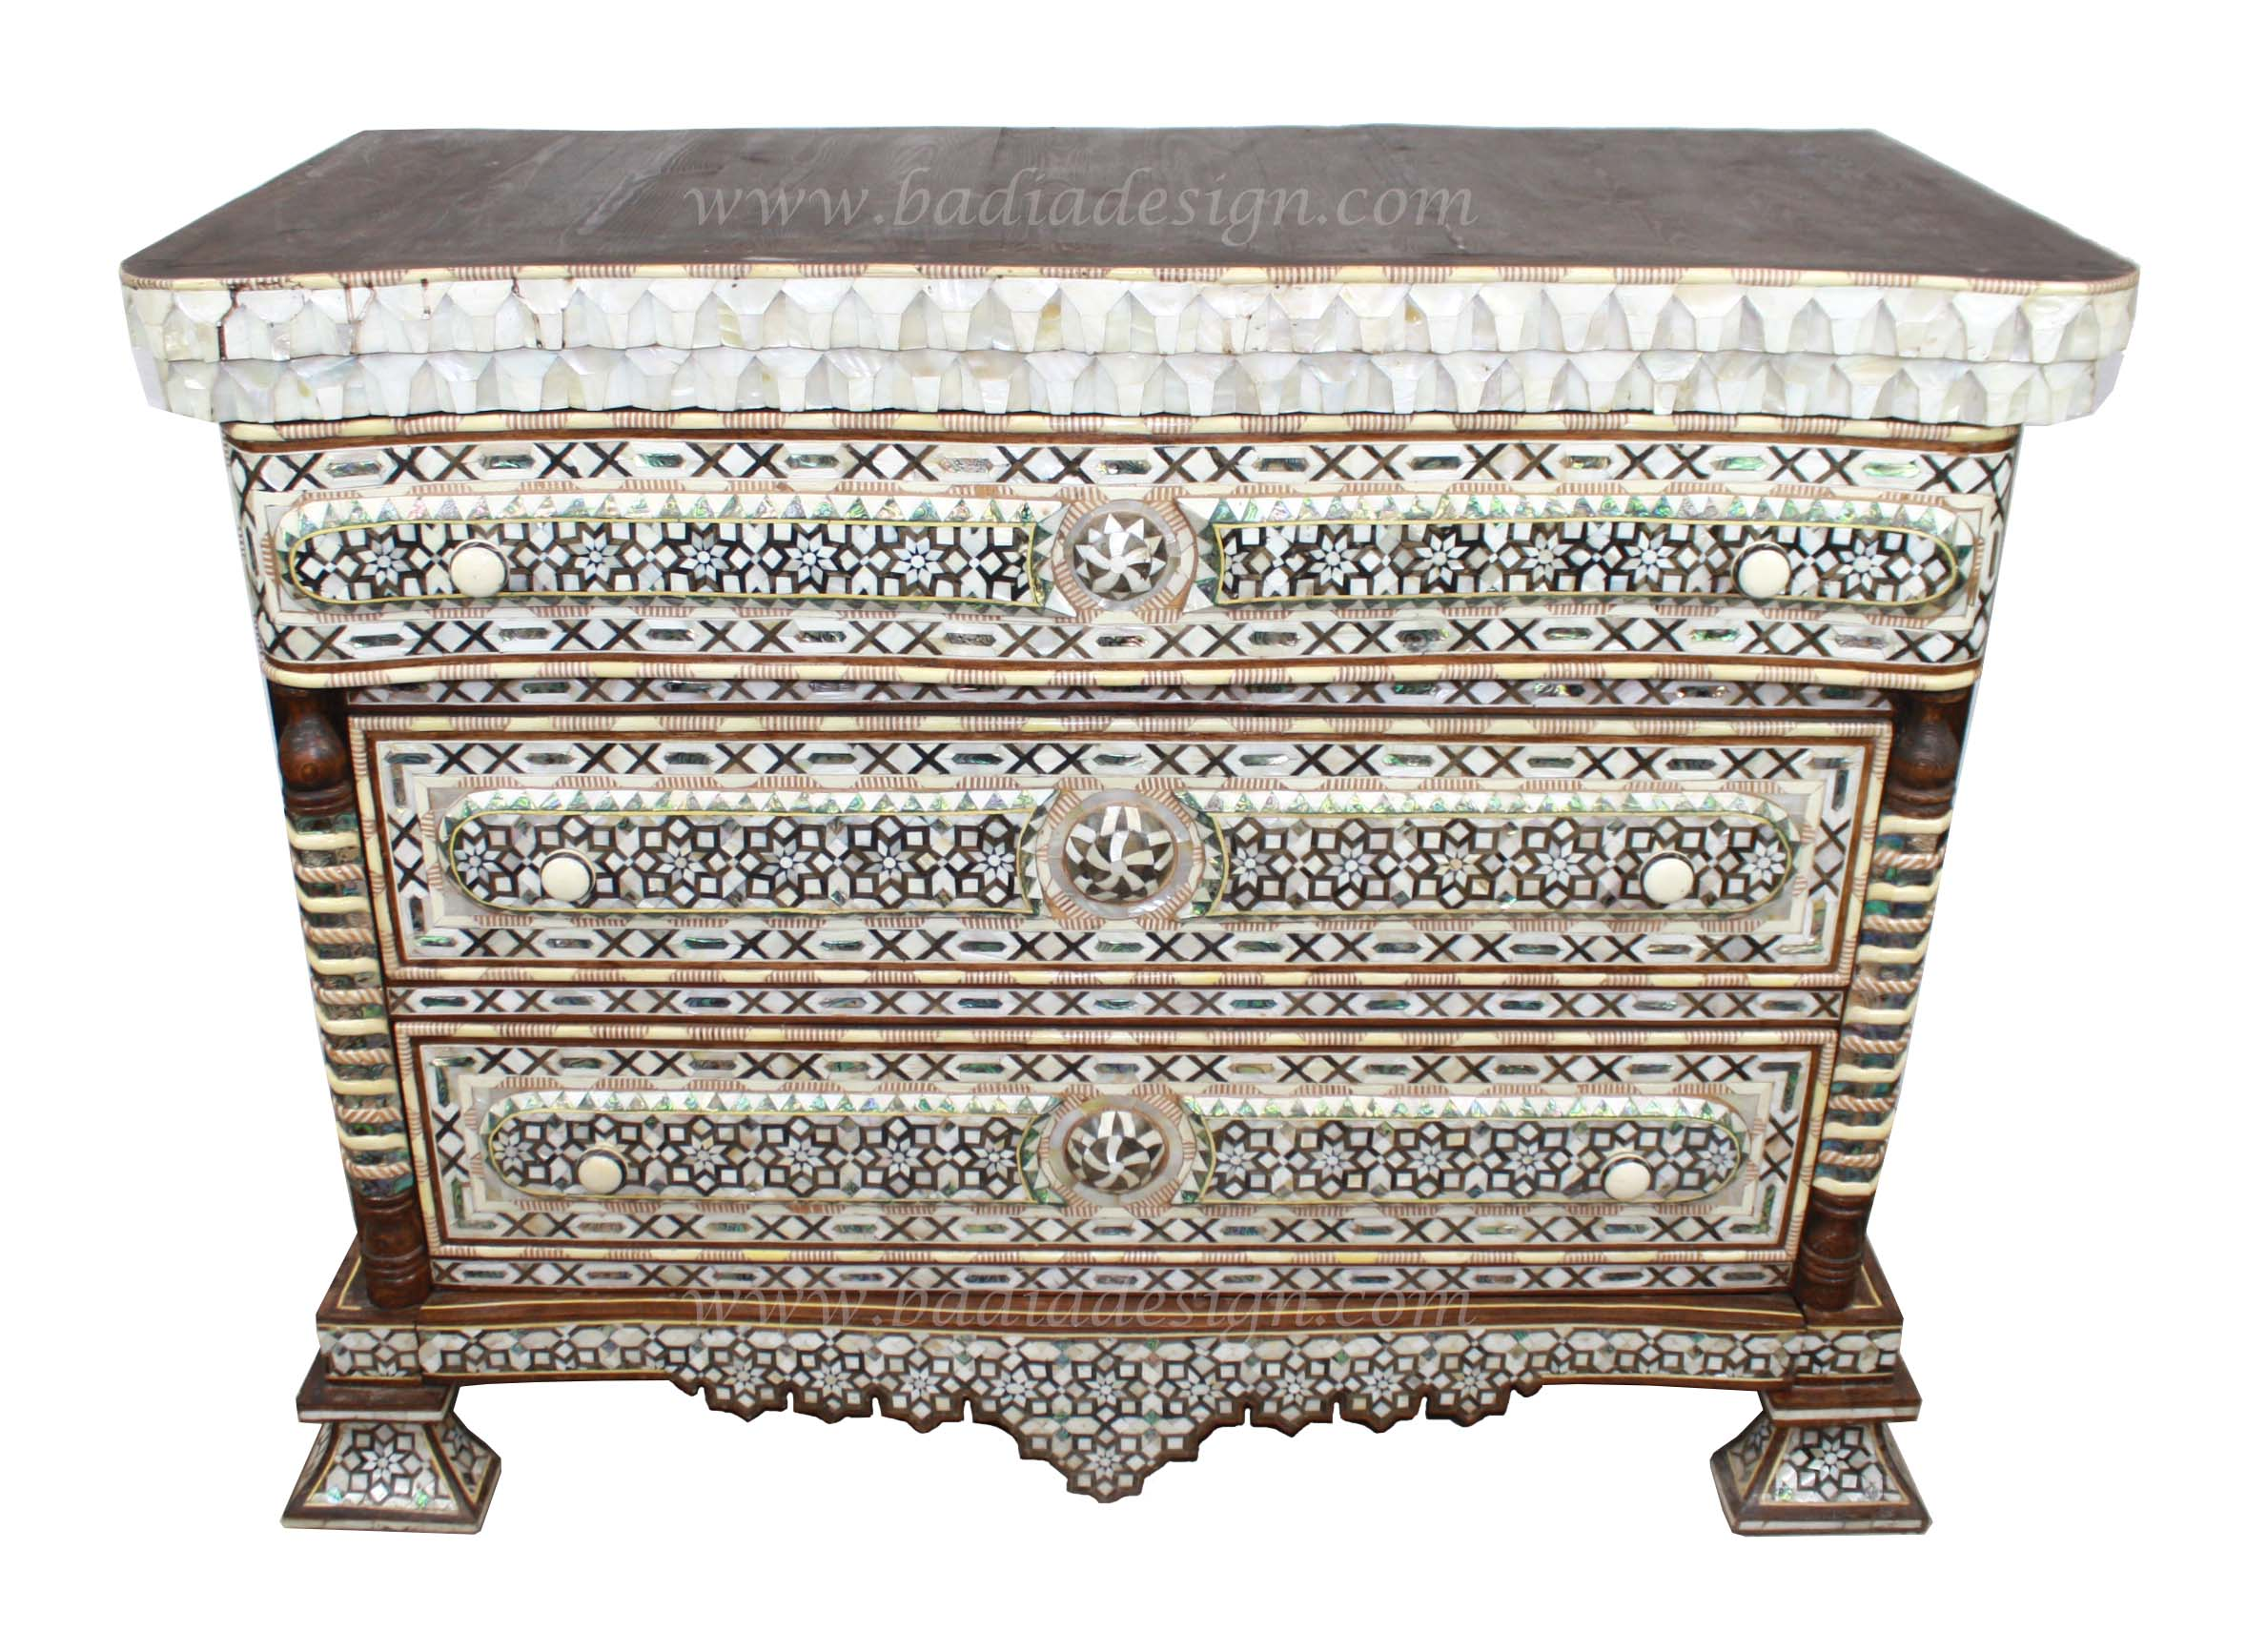 large-moroccan-mother-of-pearl-dresser-mop-dr052-1.jpg